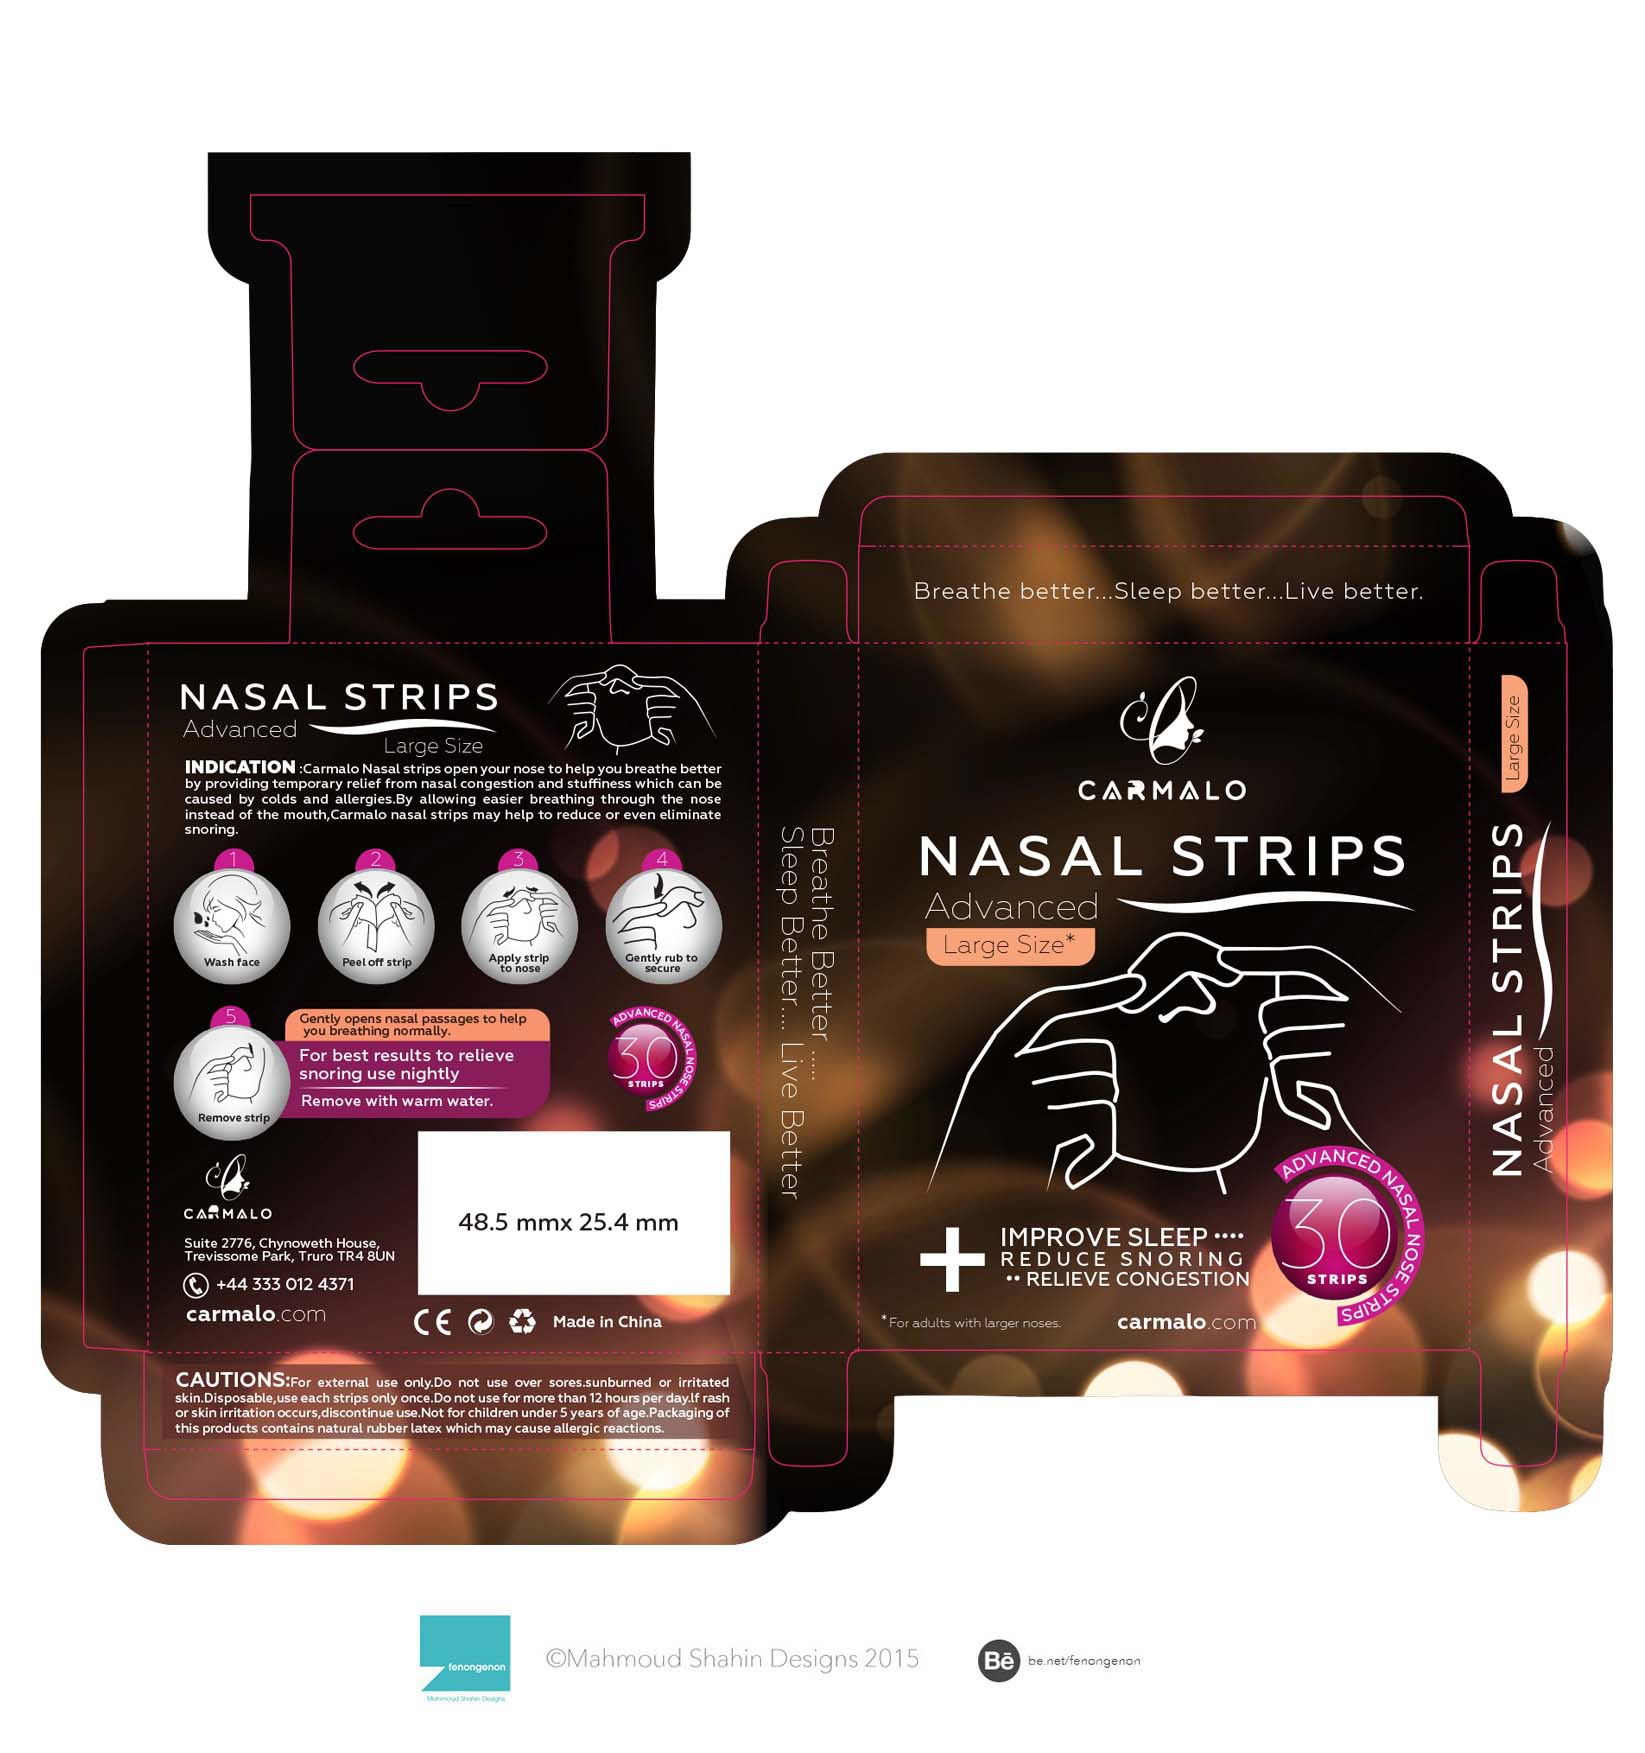 Packaging Carmalo Nasal Strips Retail Box